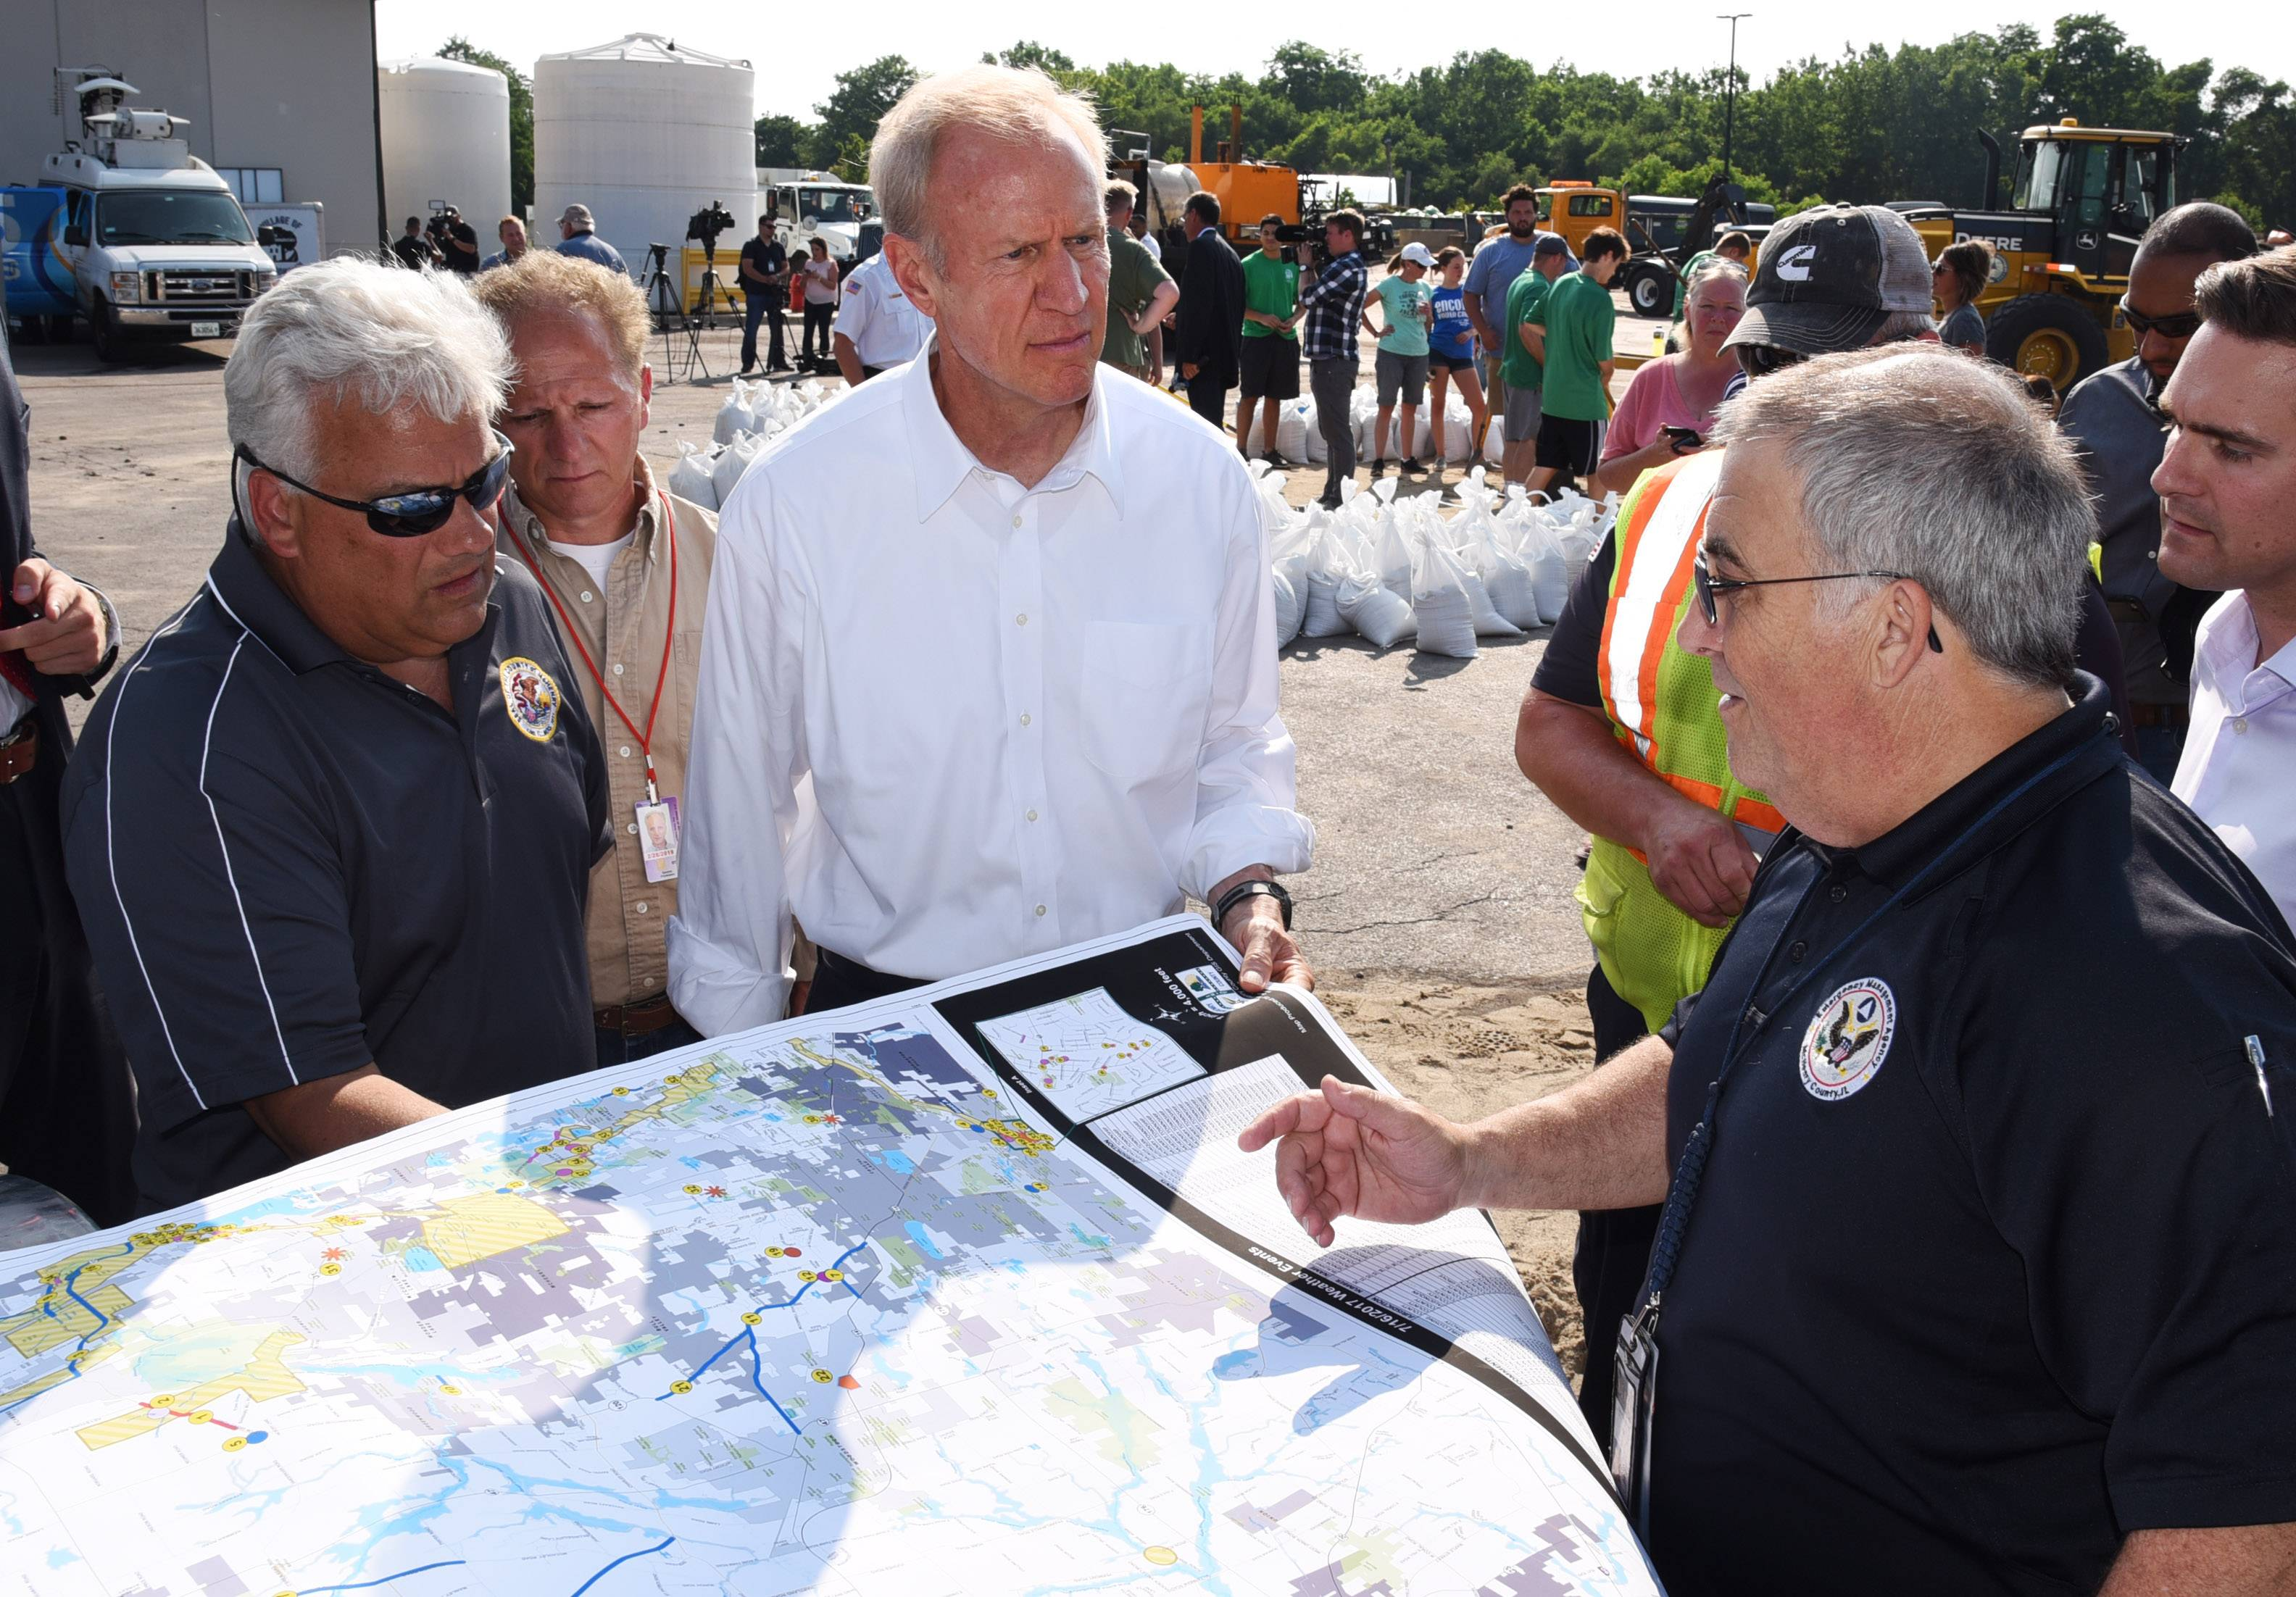 Gov. Bruce Rauner, shown here in July, has requested federal assistance for people affected by flooding and severe storms this summer in Cook, Kane, Lake and McHenry counties.